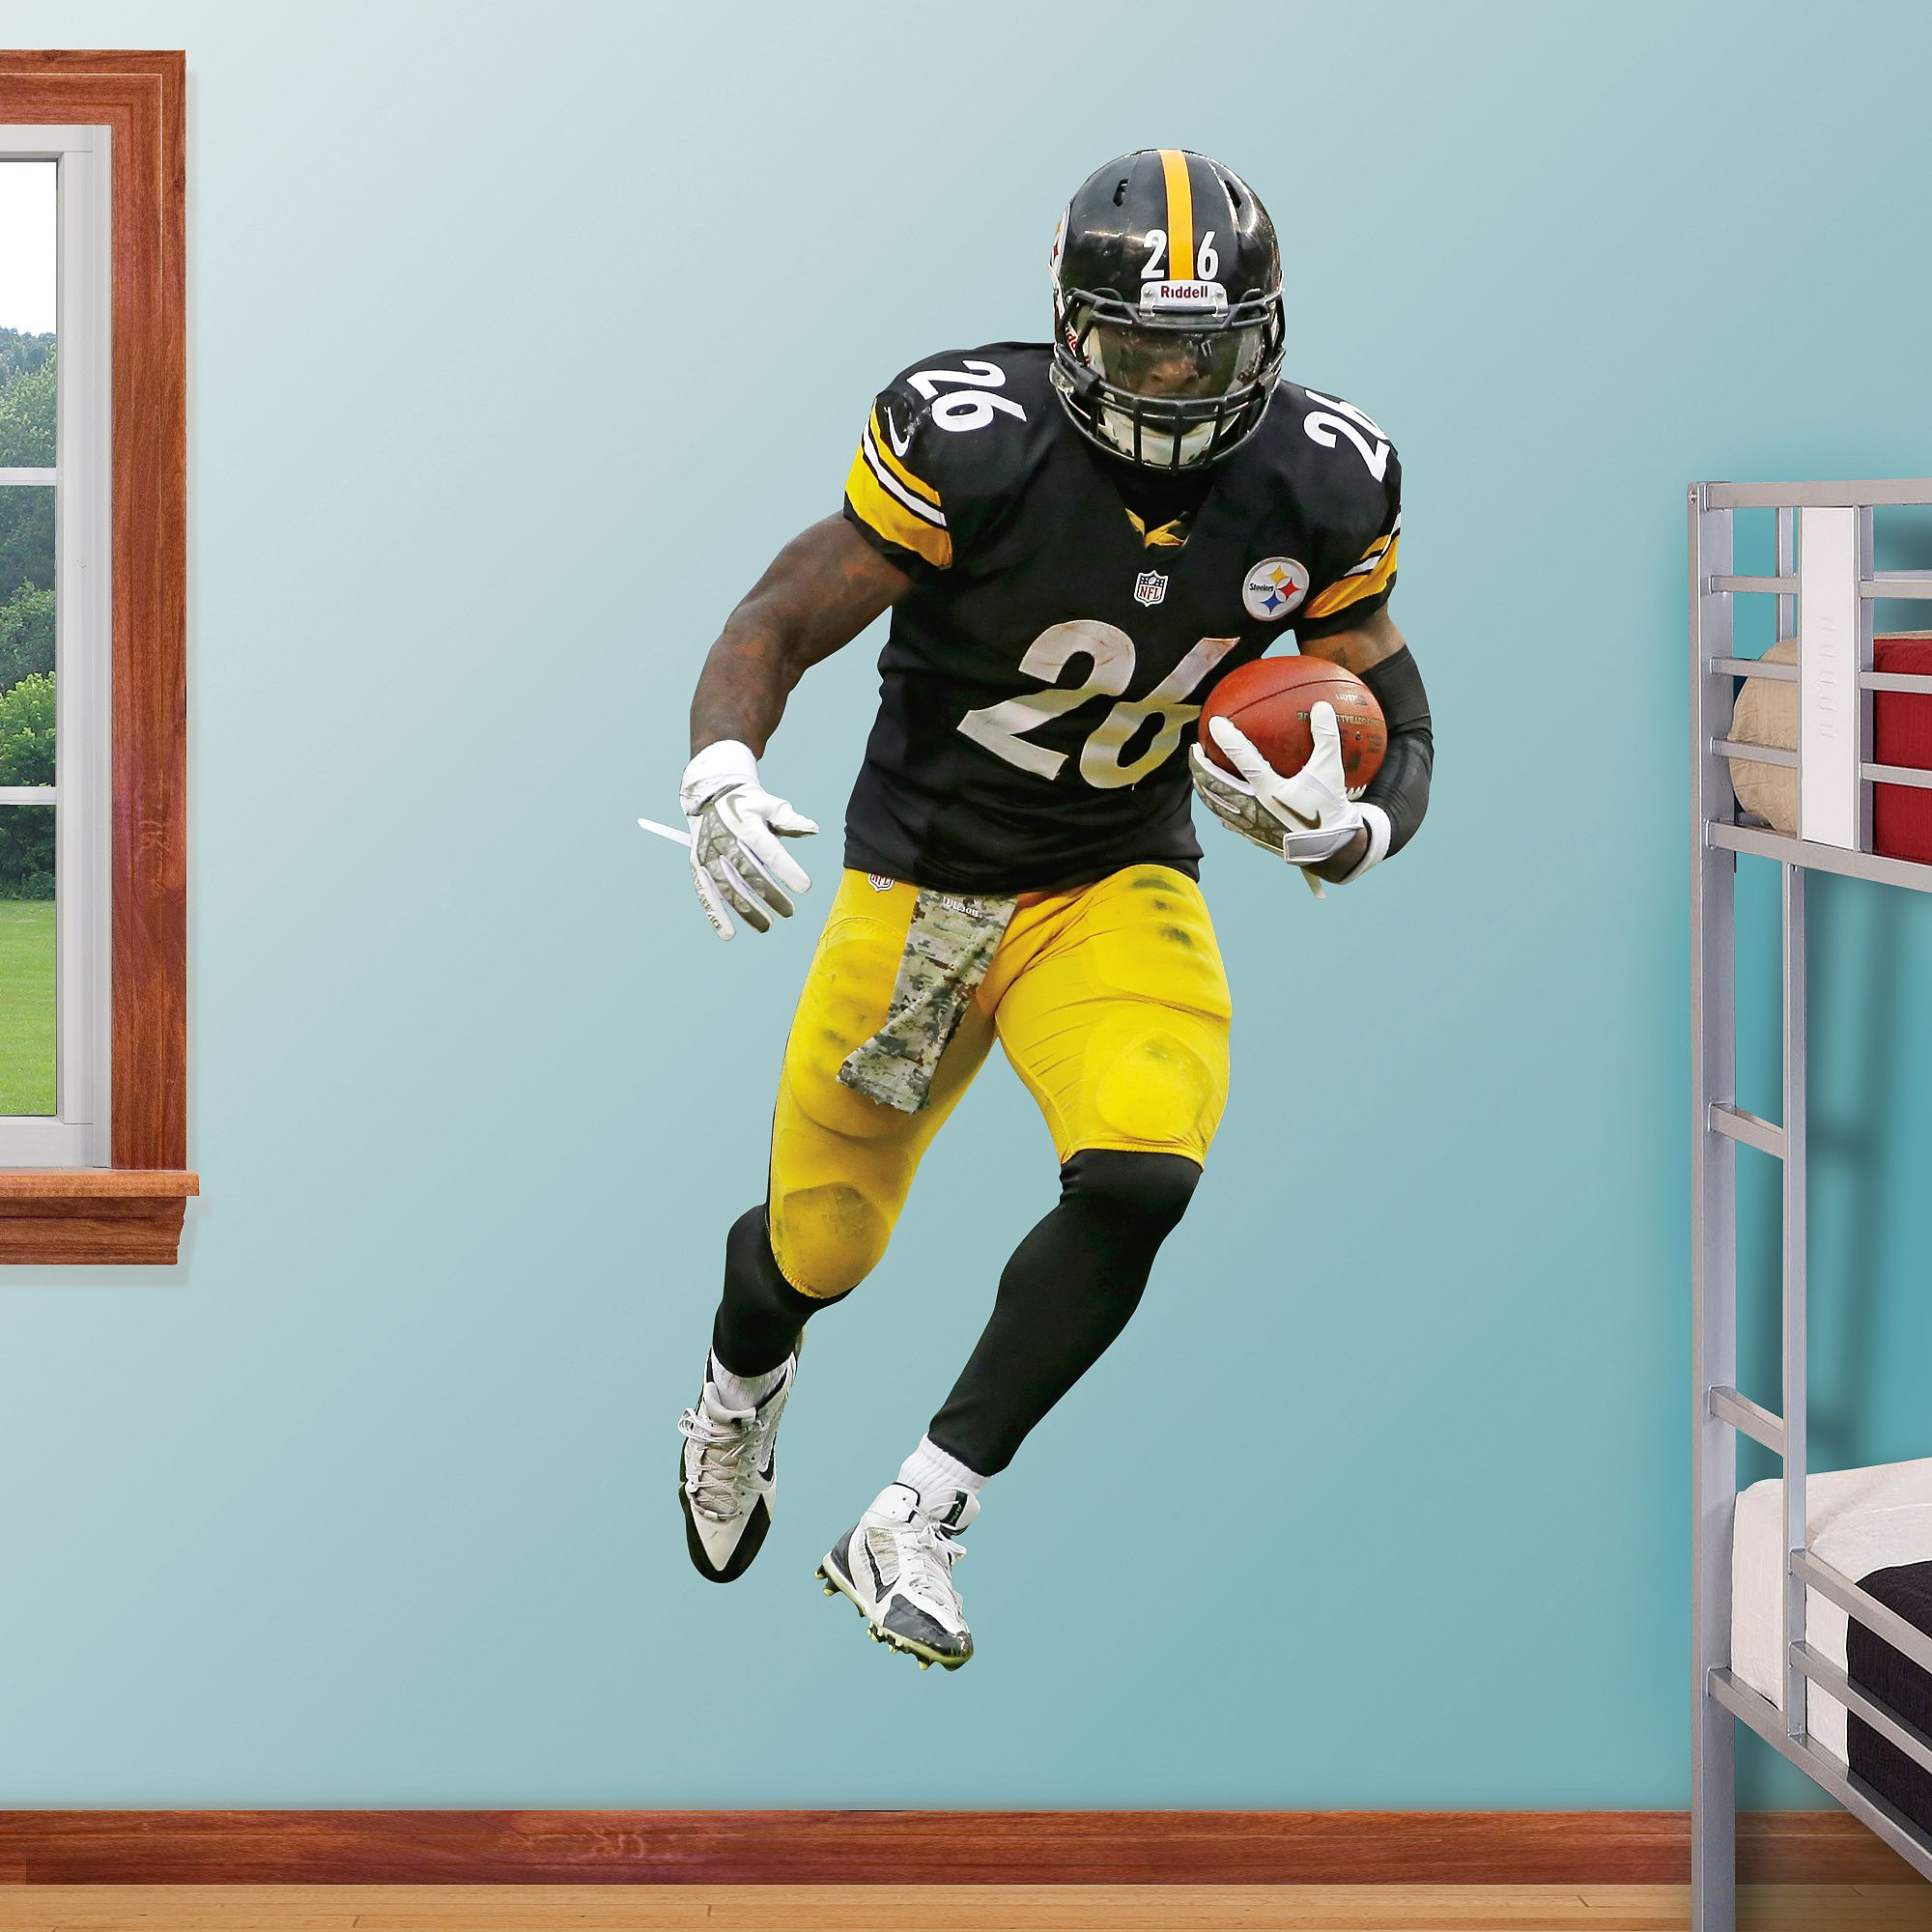 Leveon bell pittsburgh steelers wall decals and le veon bell diy life size wall decals a fathead stays up on its own with a amipublicfo Image collections